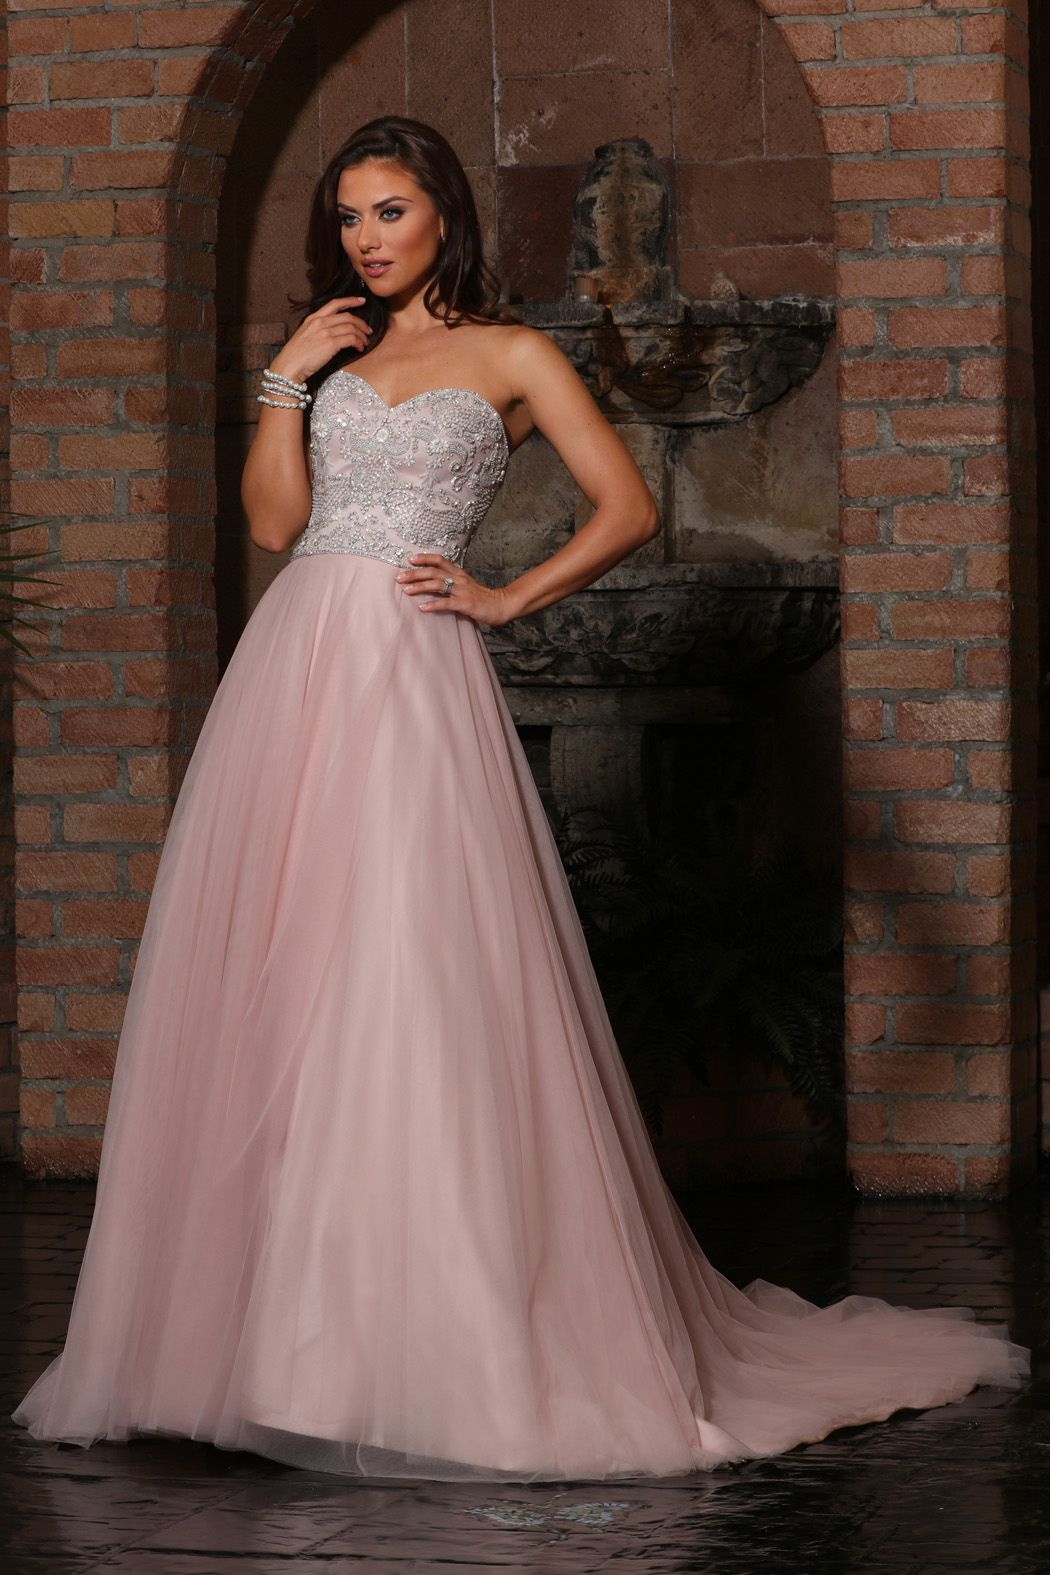 Stunning Cristiano Lucci Spring LucciWedding GownsDress Ideas